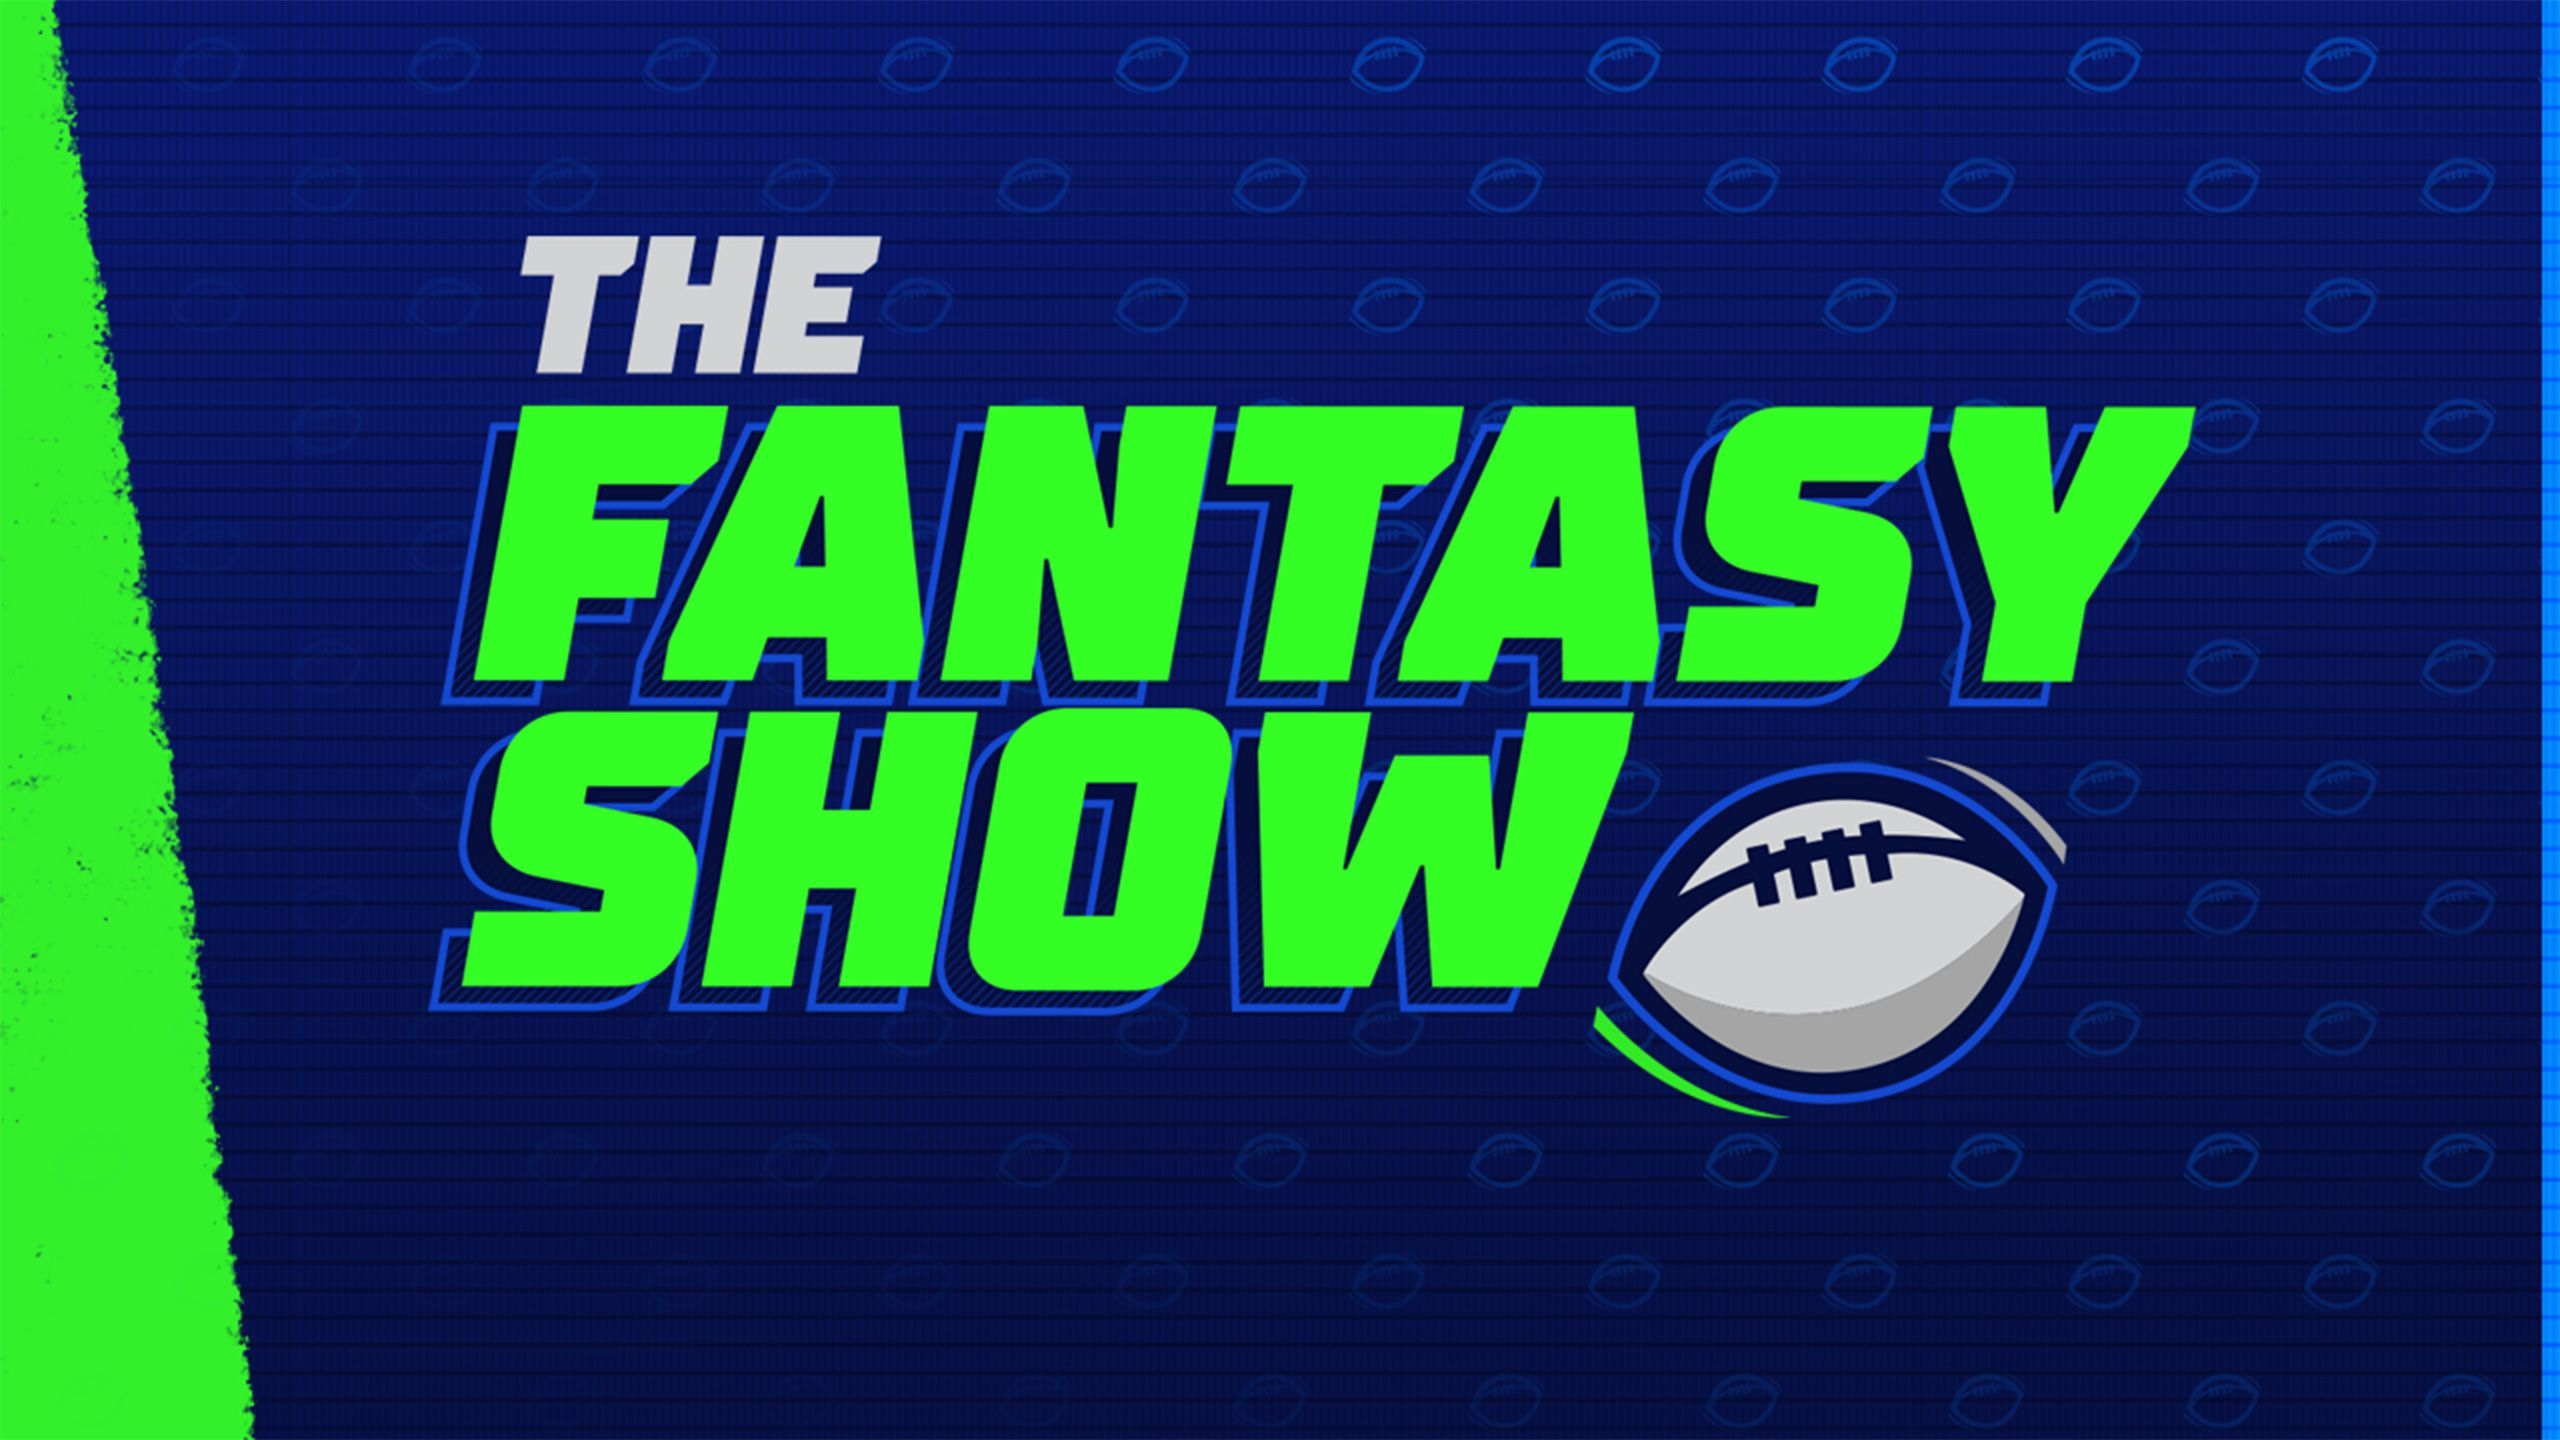 Fri, 11/24 - The Fantasy Show presented by E*Trade